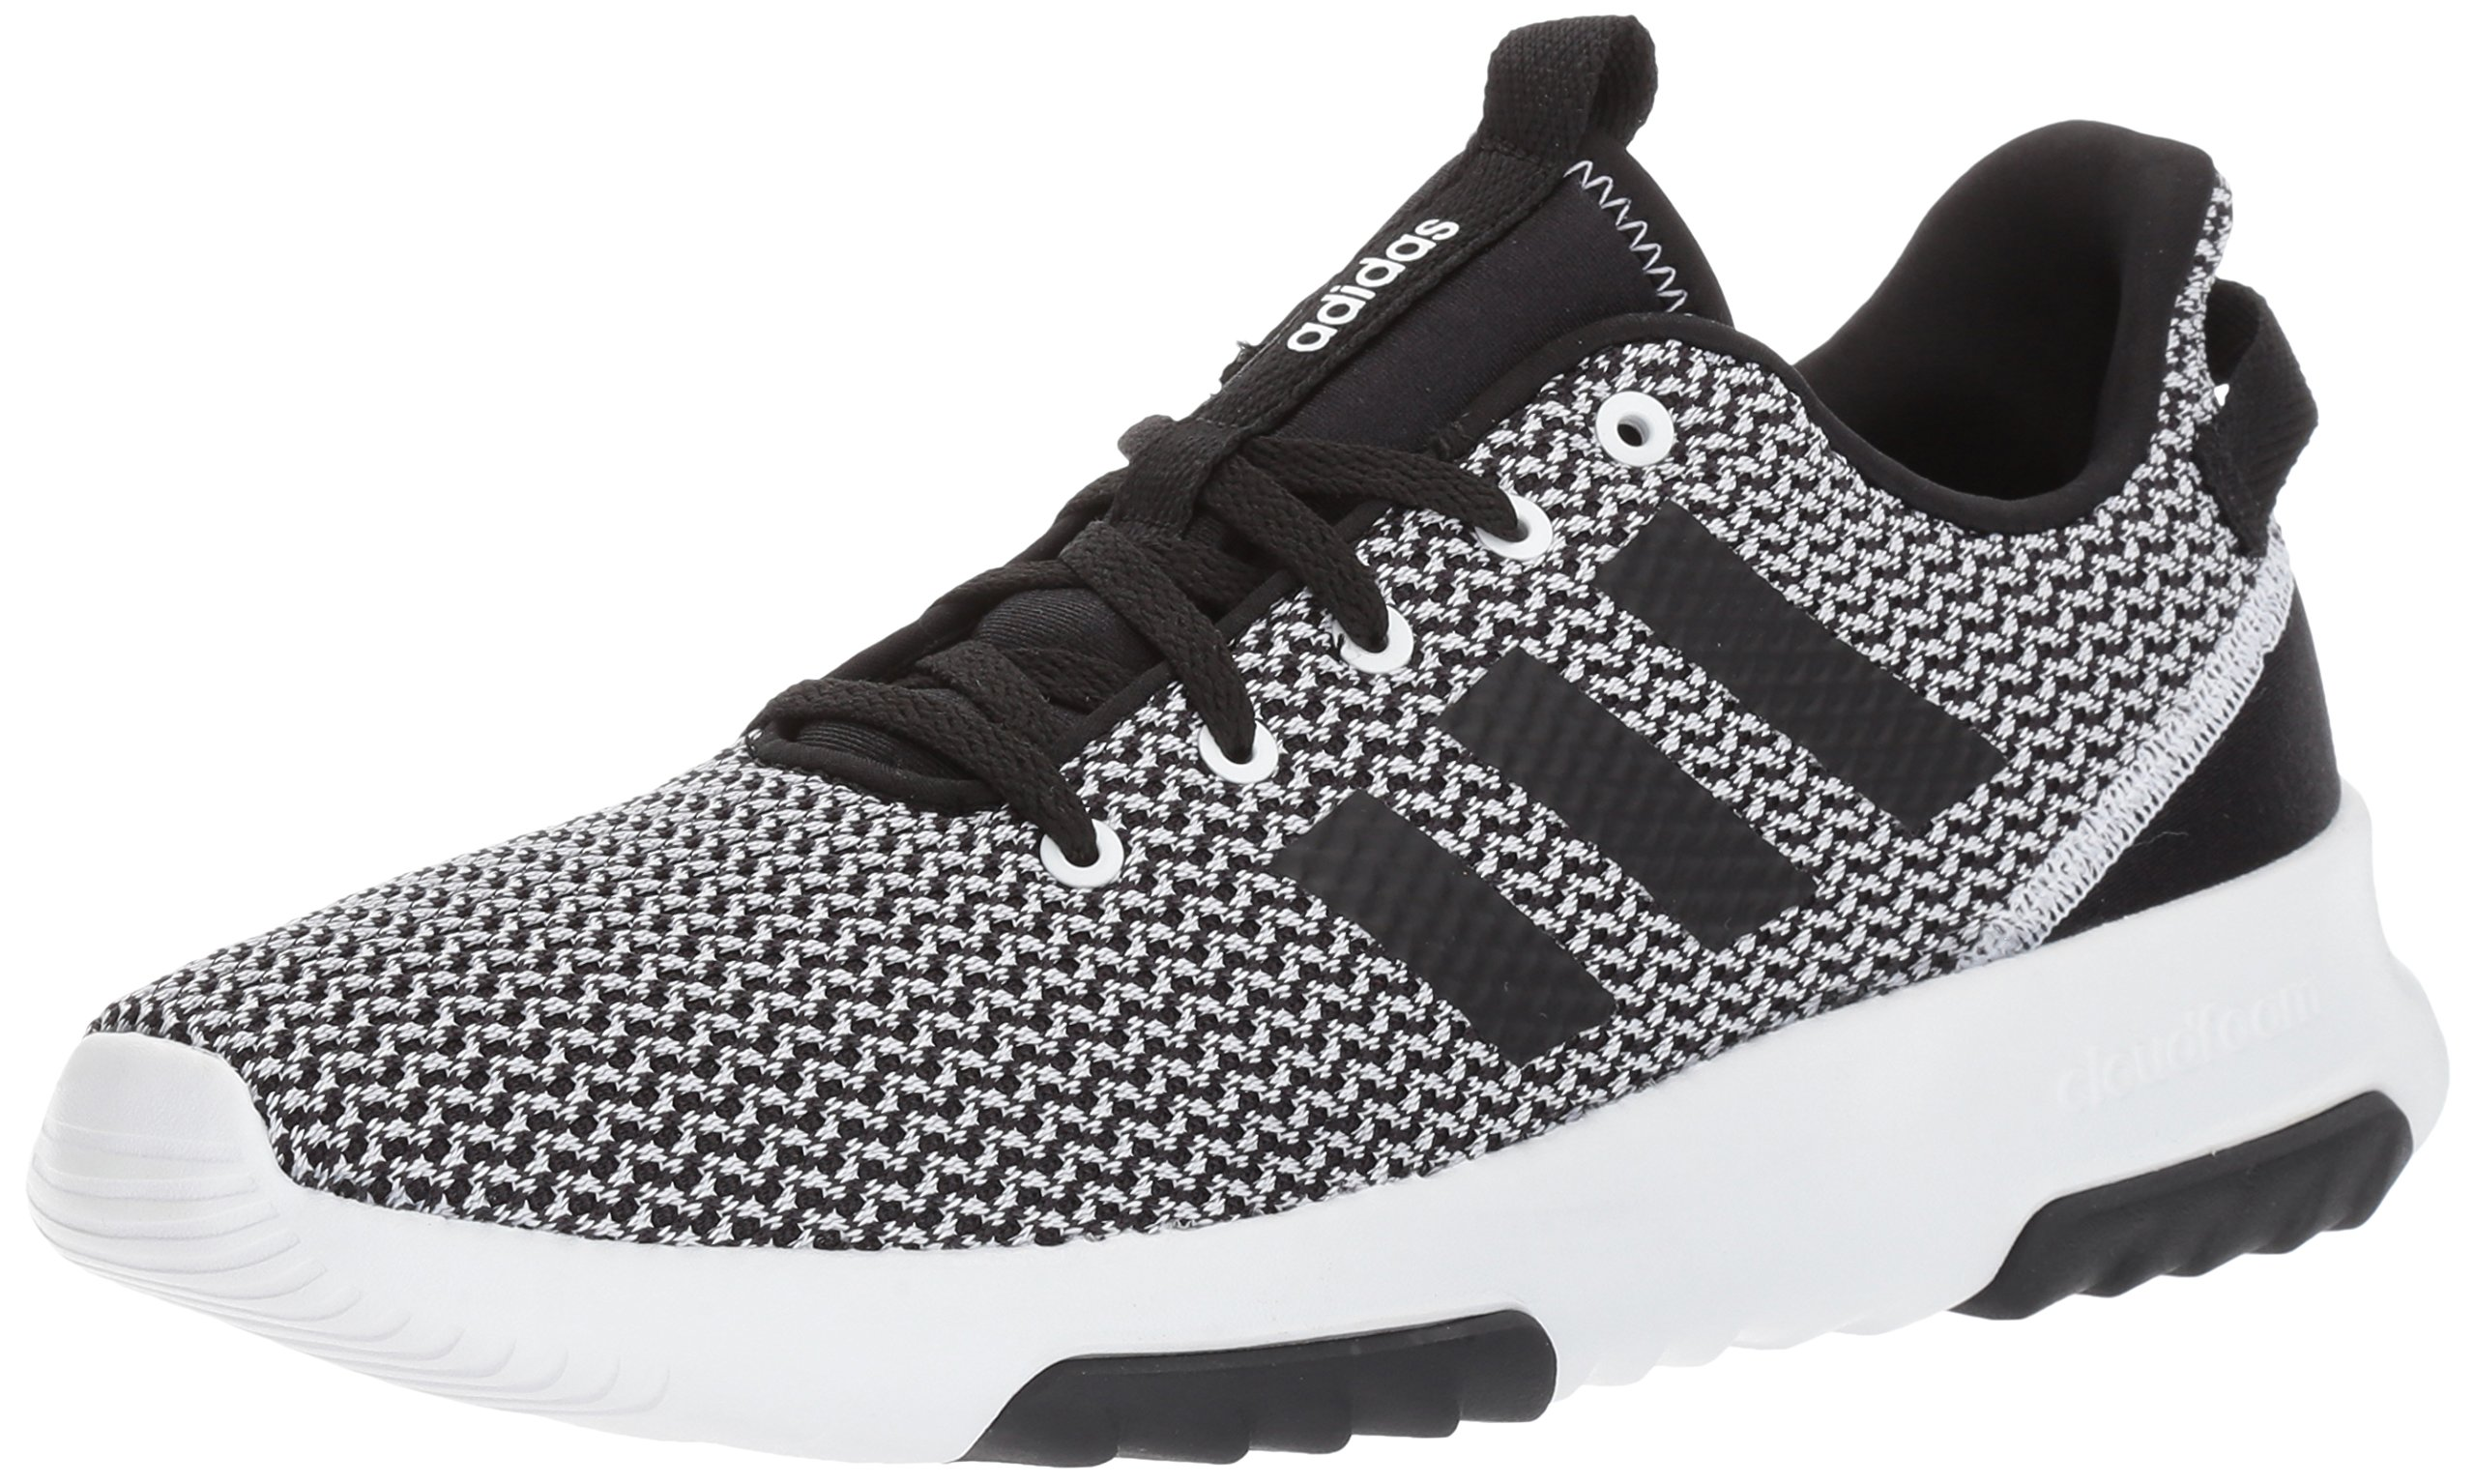 adidas Men's Cf Racer Tr Hiking Shoes Black/White, (12 M US)